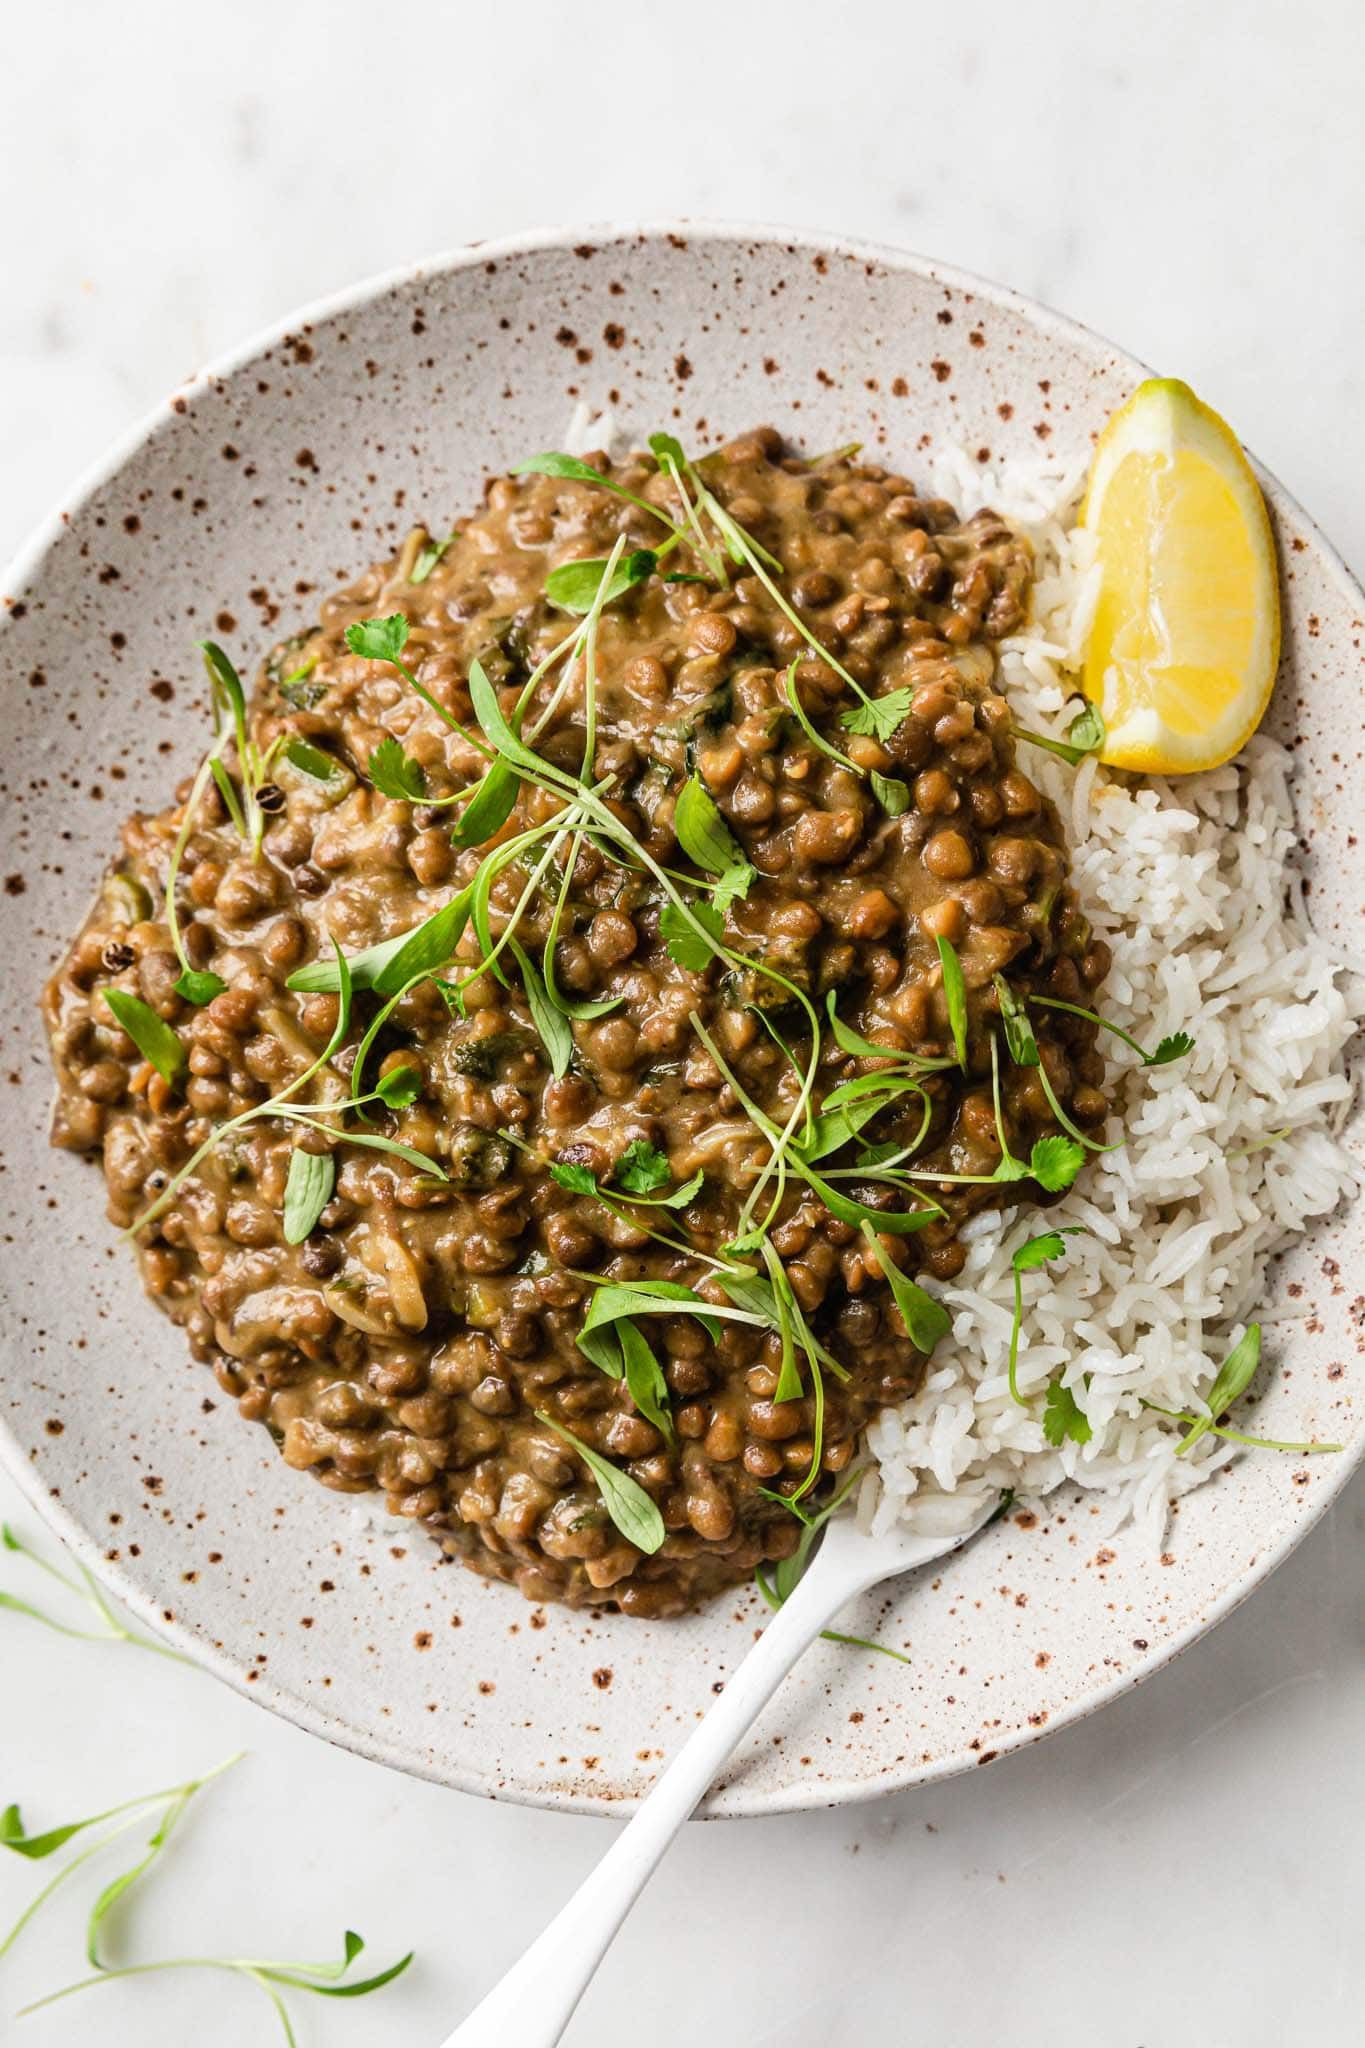 Instant Pot Whole Masoor Dal (Brown Lentil Curry) in a speckled plate garnished with cilantro and served with a lemon wedge on the side